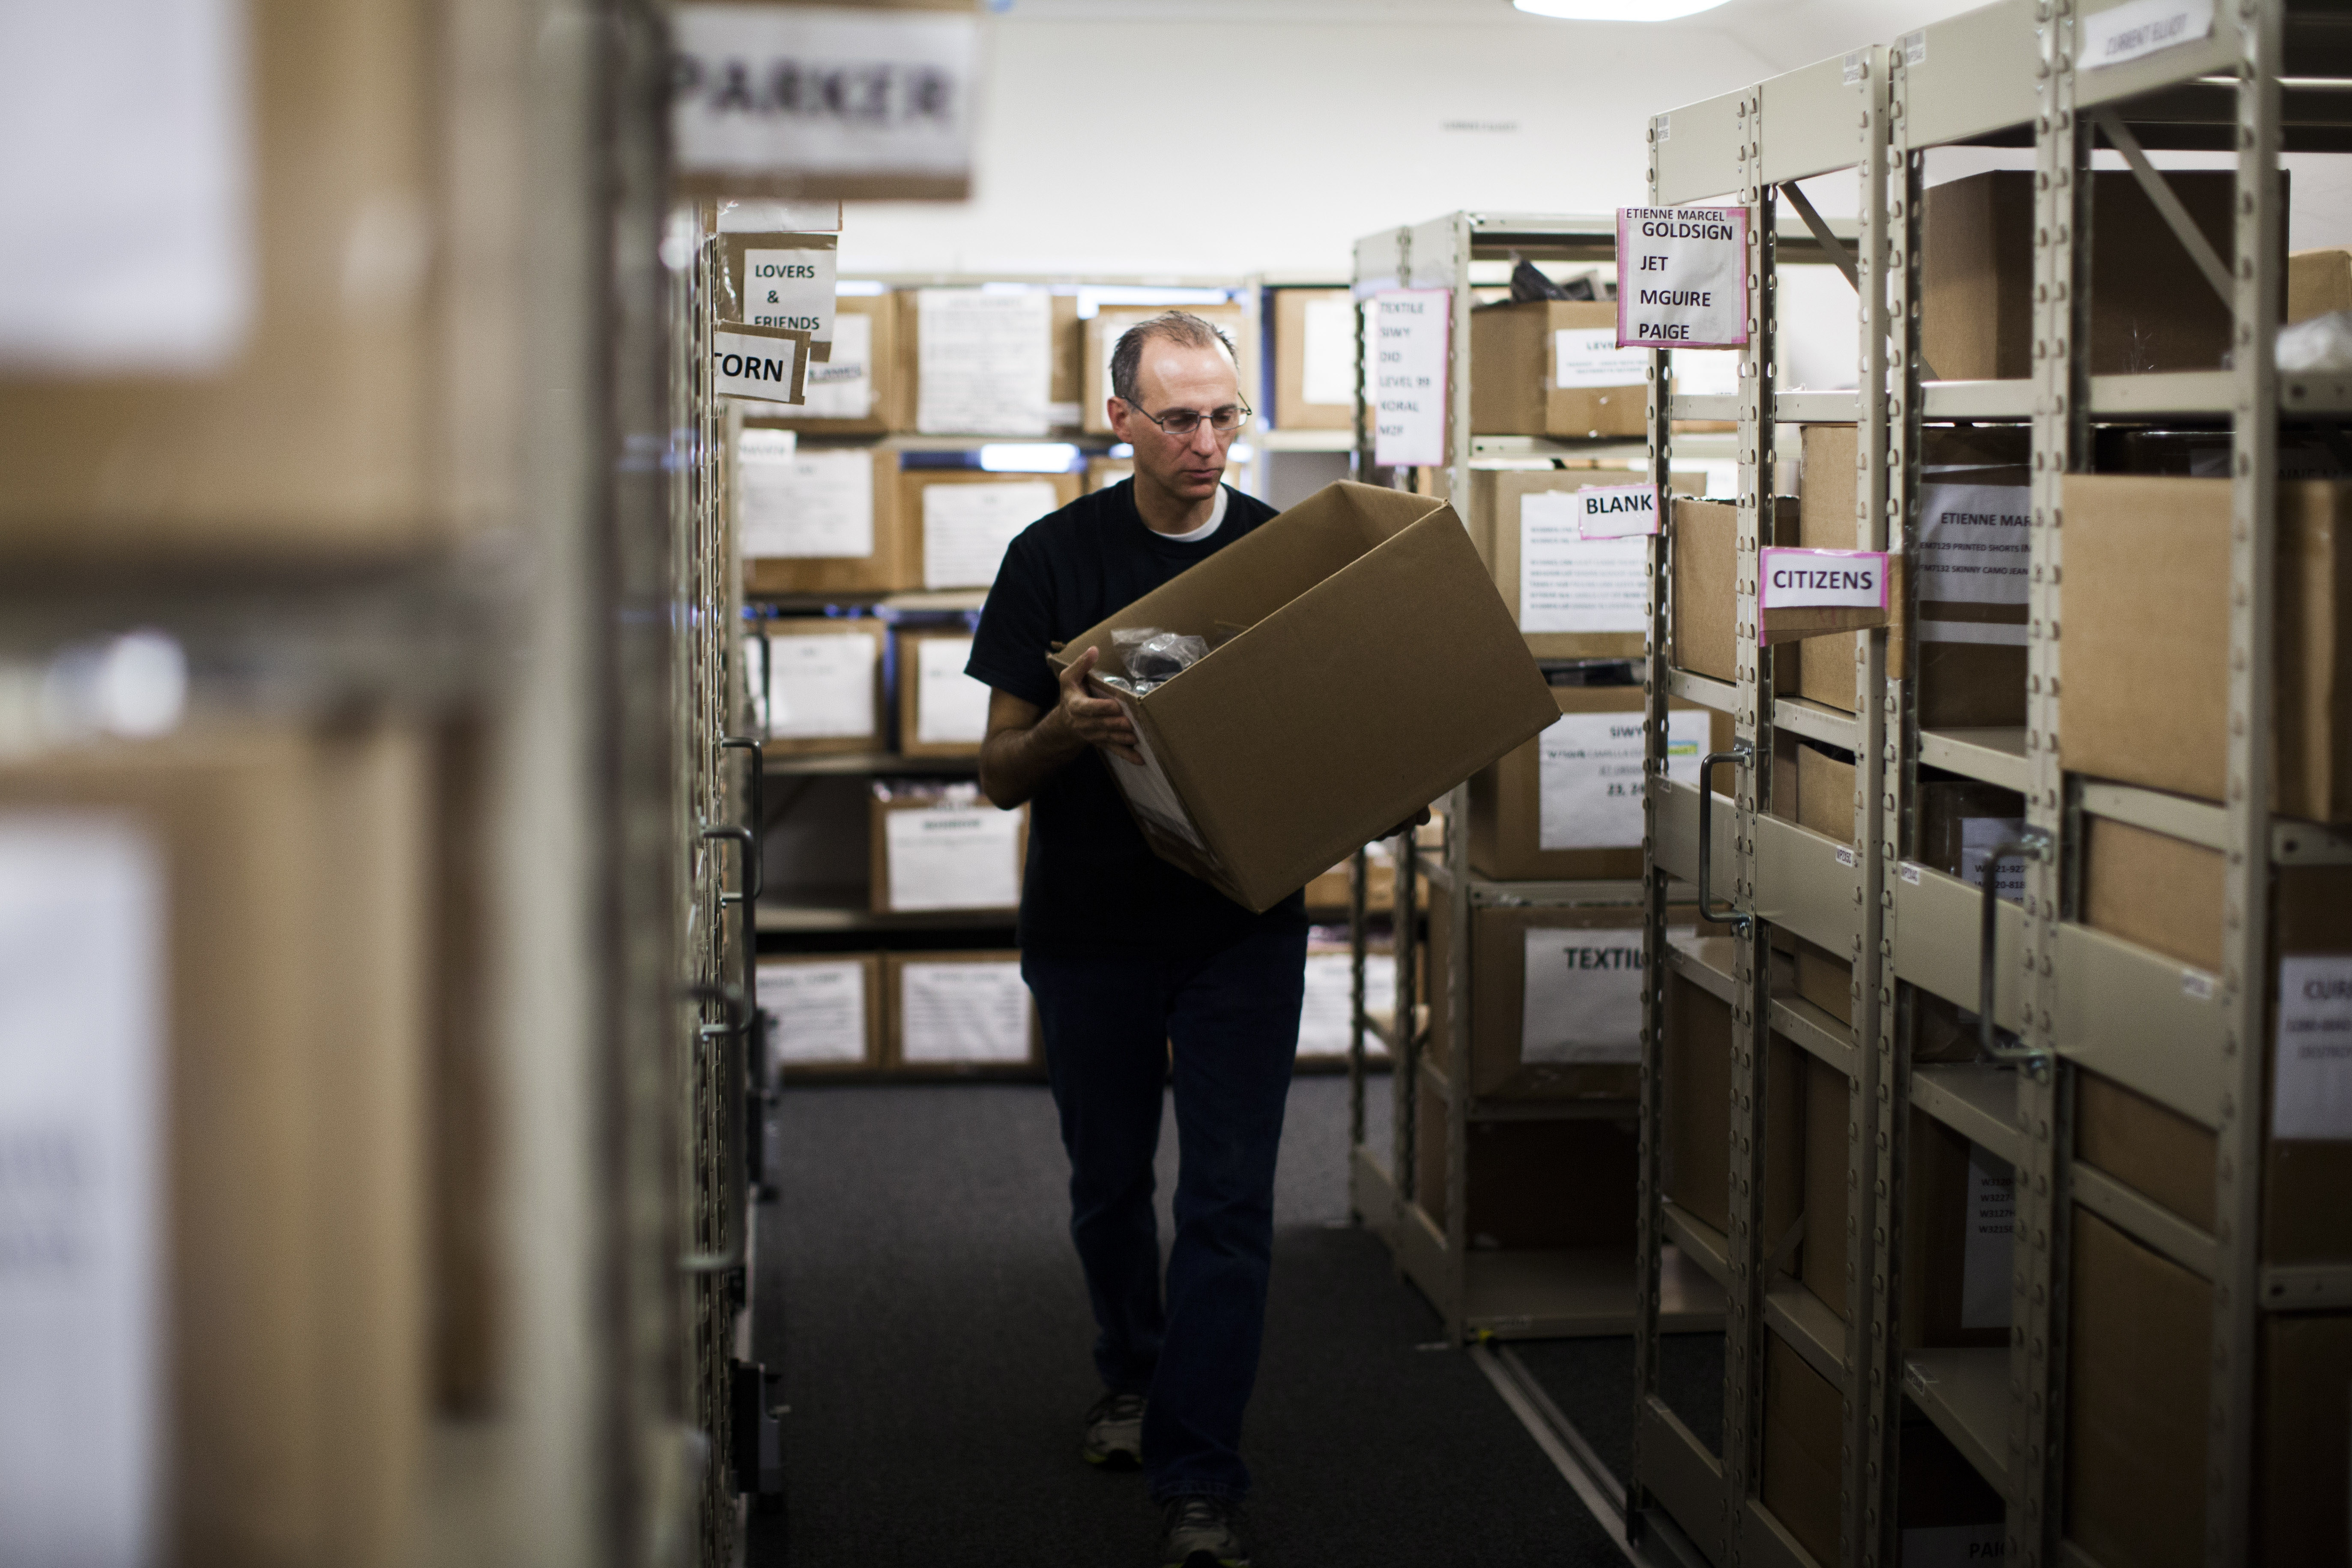 Bryan Sanders works in the warehouse of Singer22, a clothing store and online retailer, in East Hills, N.Y., on Friday.